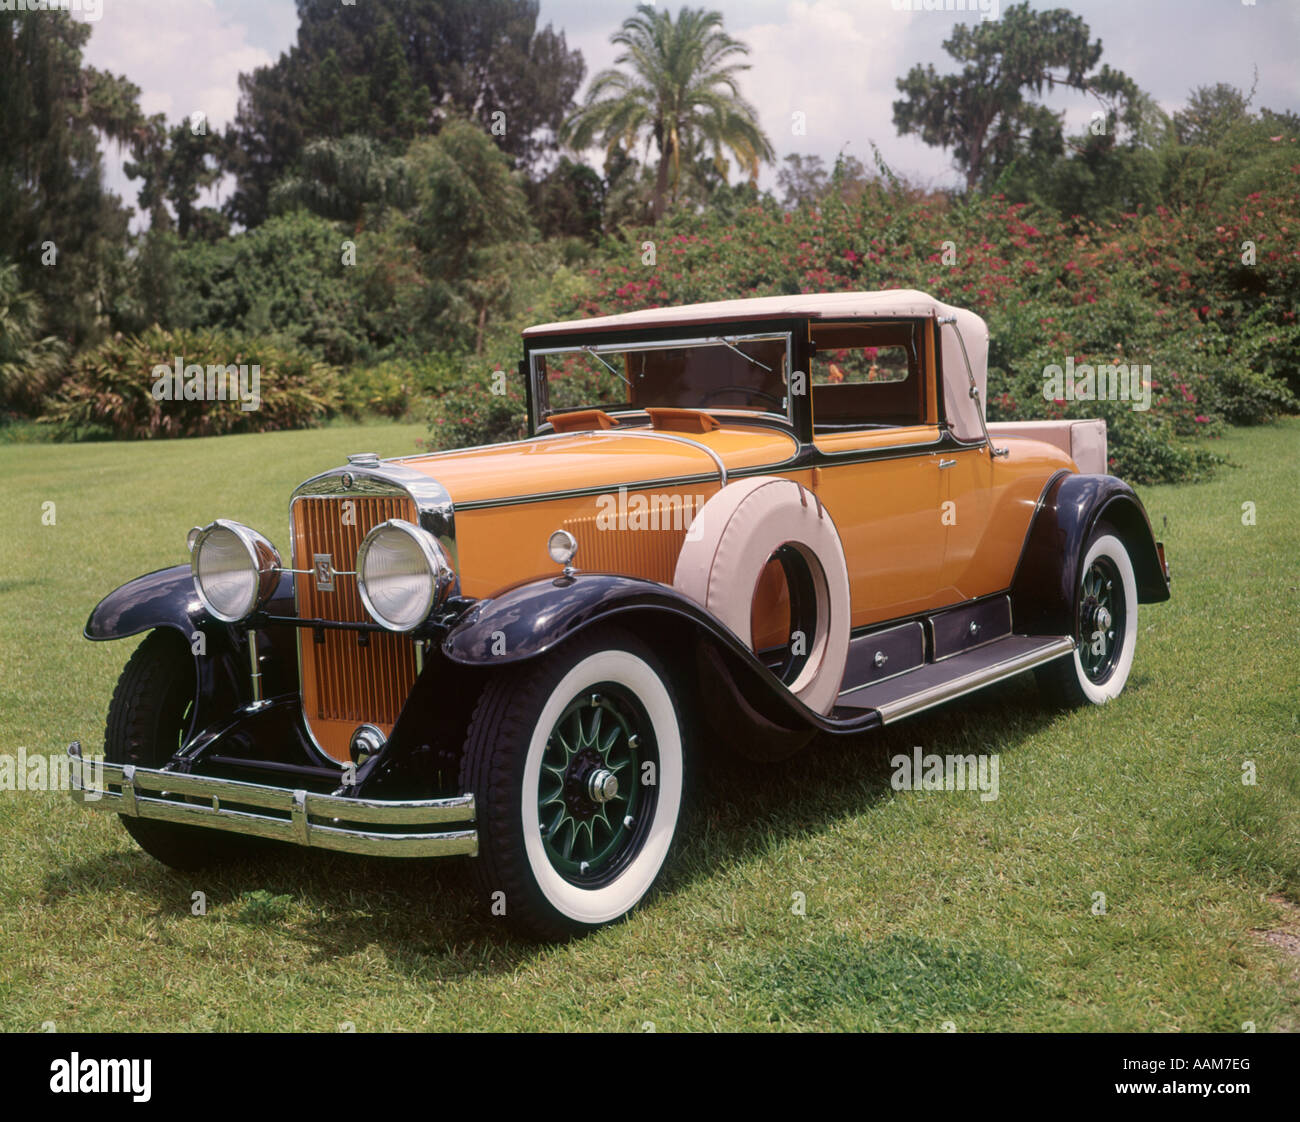 1920s 1930s cadillac convertible roadster yellow and black with stock photo royalty free image. Black Bedroom Furniture Sets. Home Design Ideas